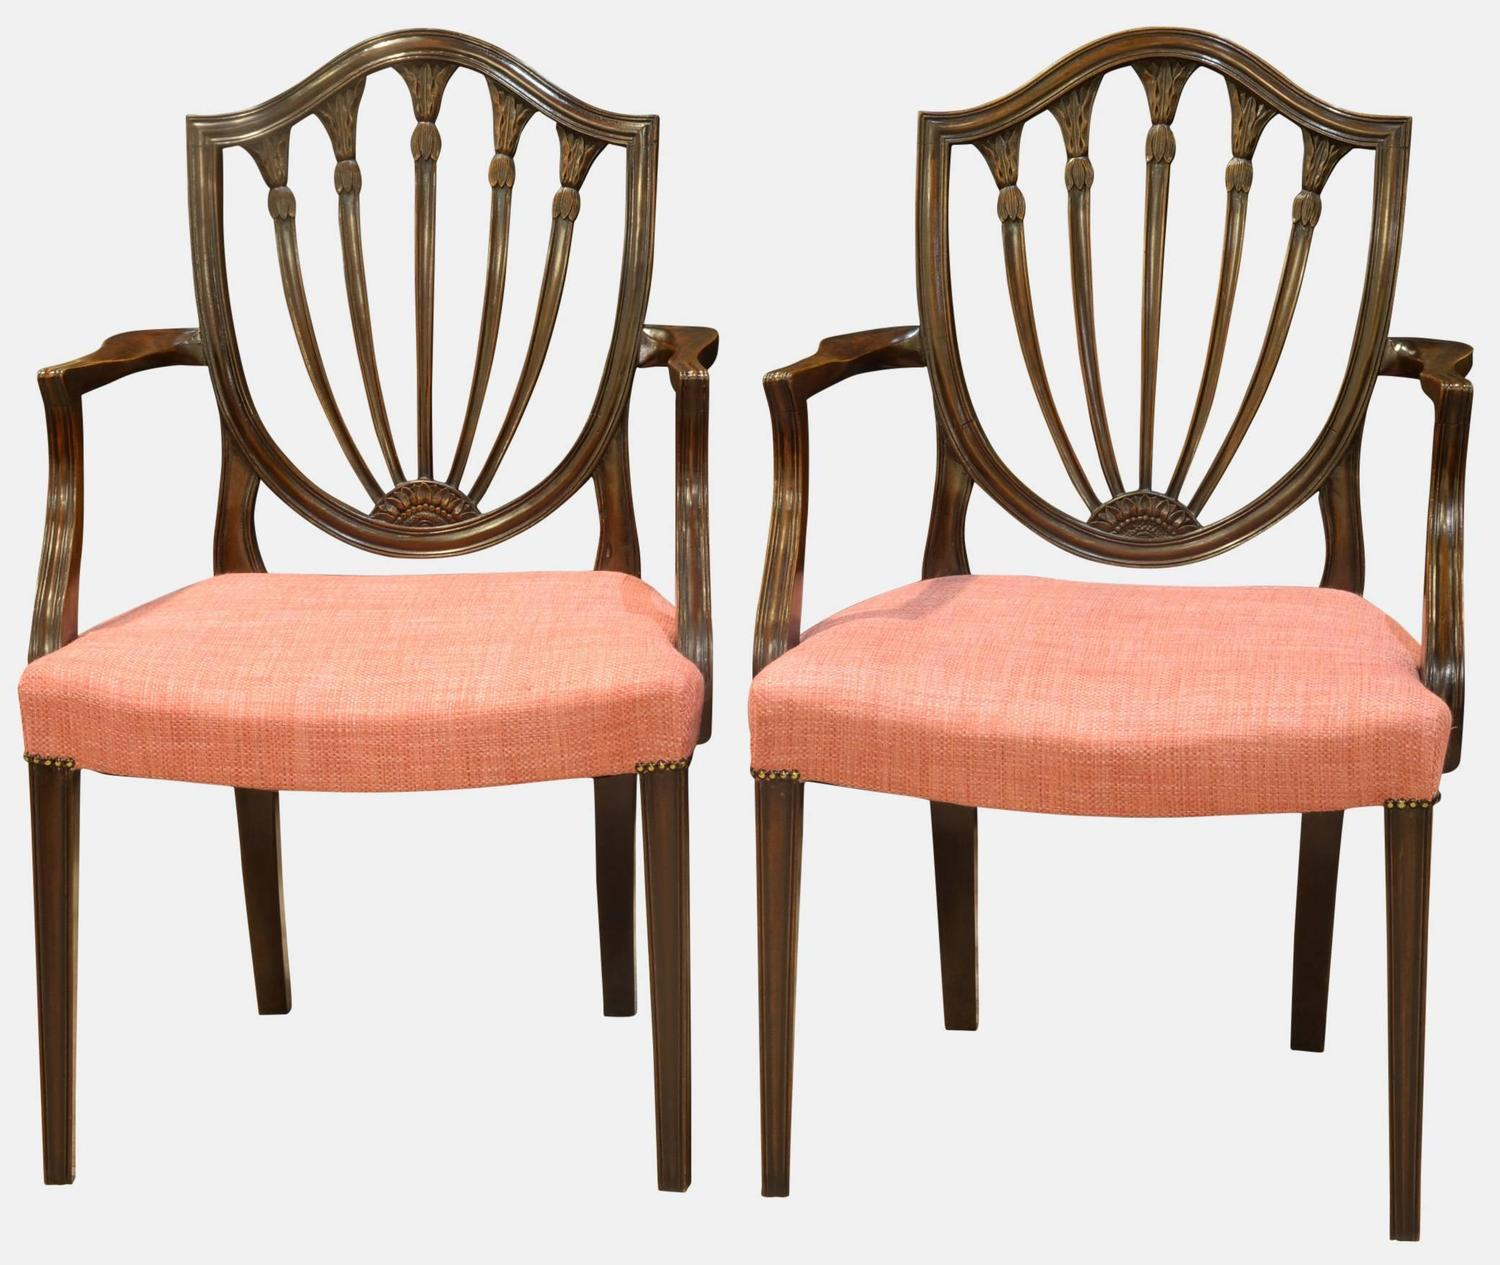 Hepplewhite Chair Pair Of Hepplewhite Style Carver Chairs At 1stdibs